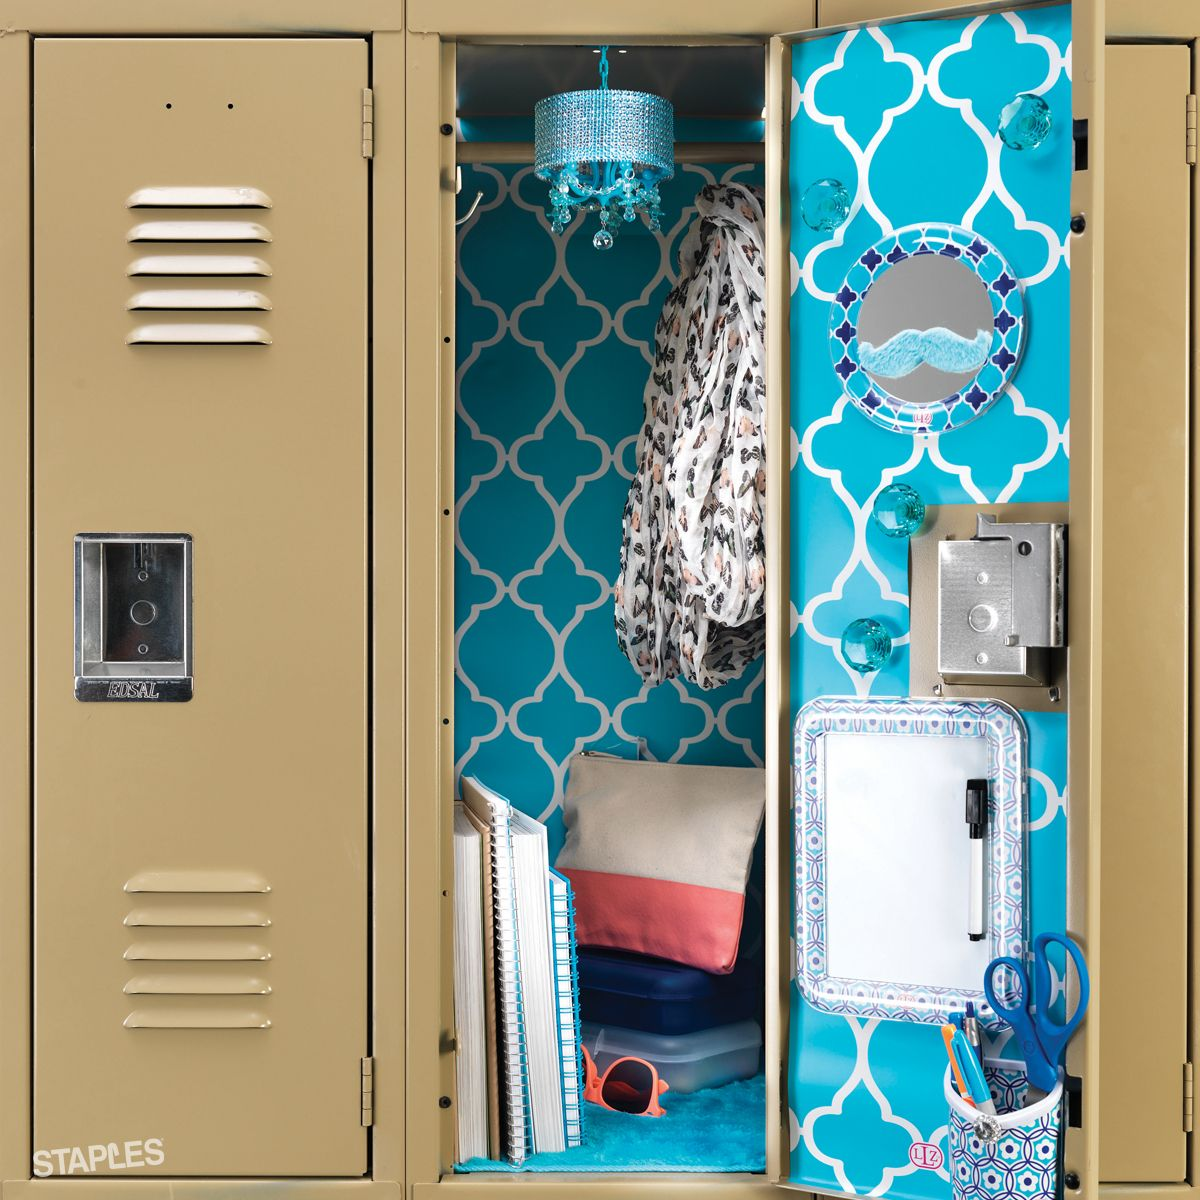 Cute Locker Wallpaper Add A Bit Of Personality To Your Locker This School Year